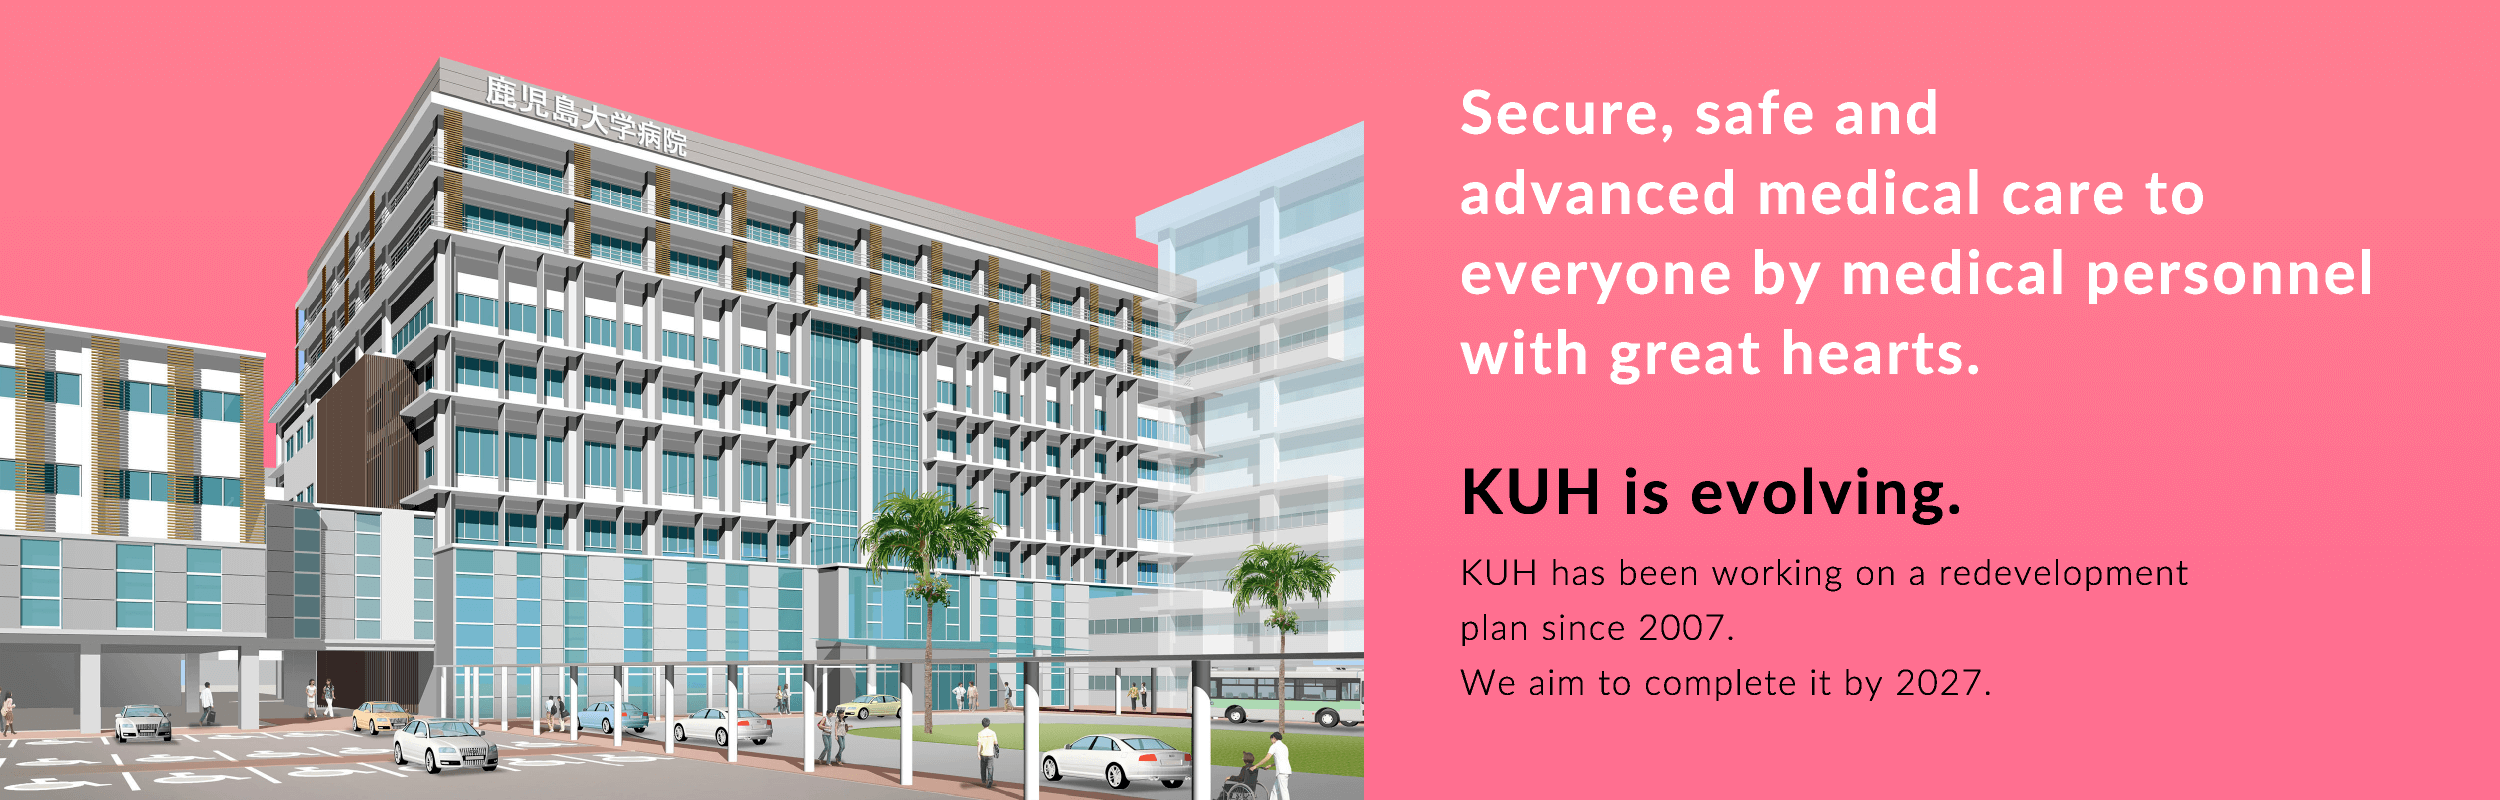 Secure, safe and advanced medical care to everyone by medical personnel with great hearts.KUH is evolving.